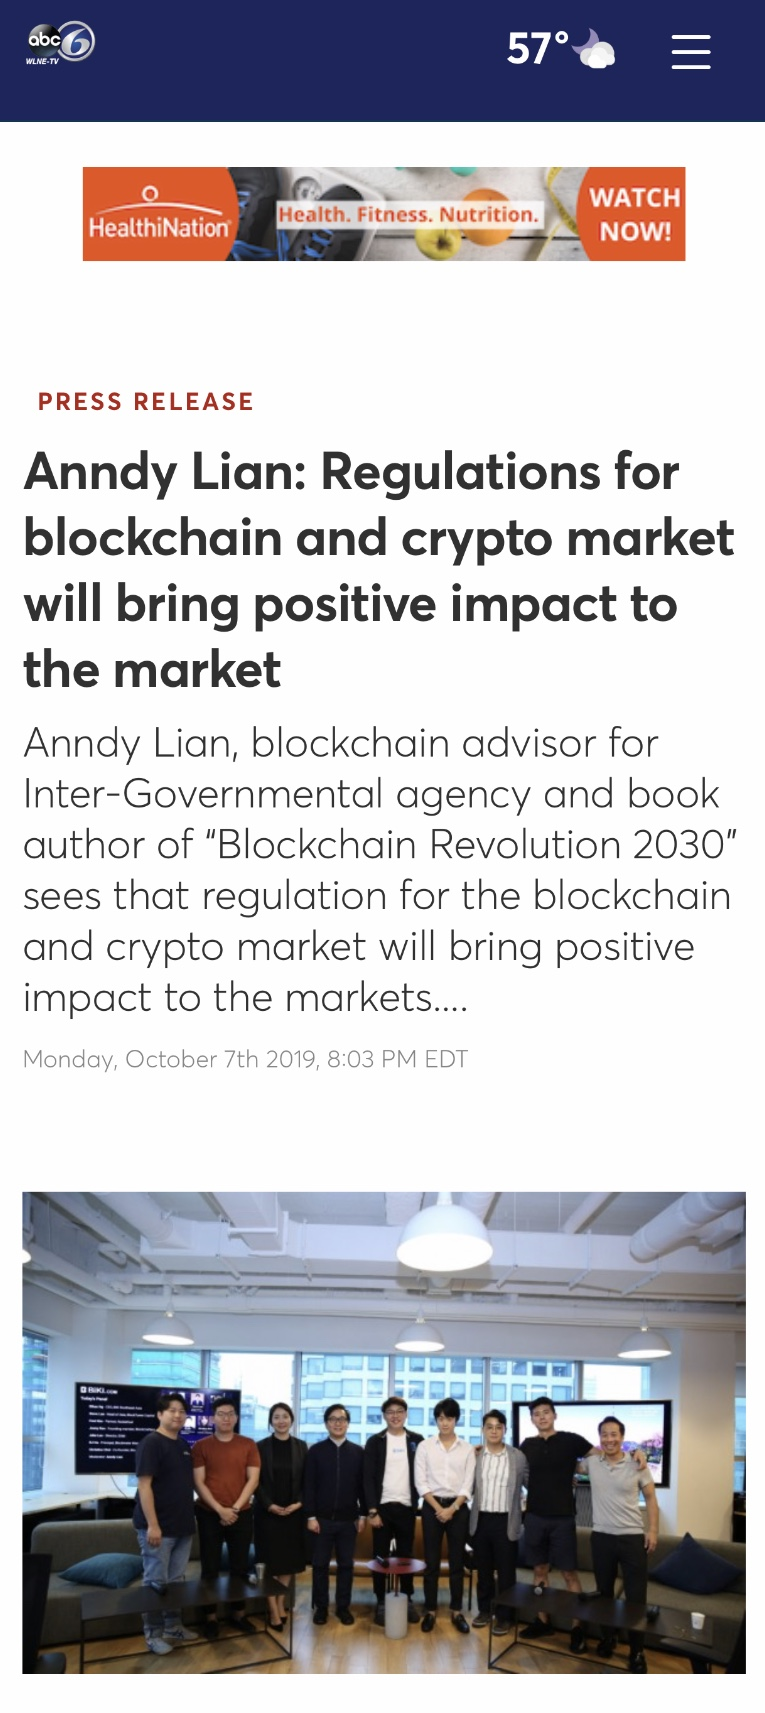 ABC NEWS- Anndy Lian: Regulations for blockchain and crypto market will bring positive impact to the market